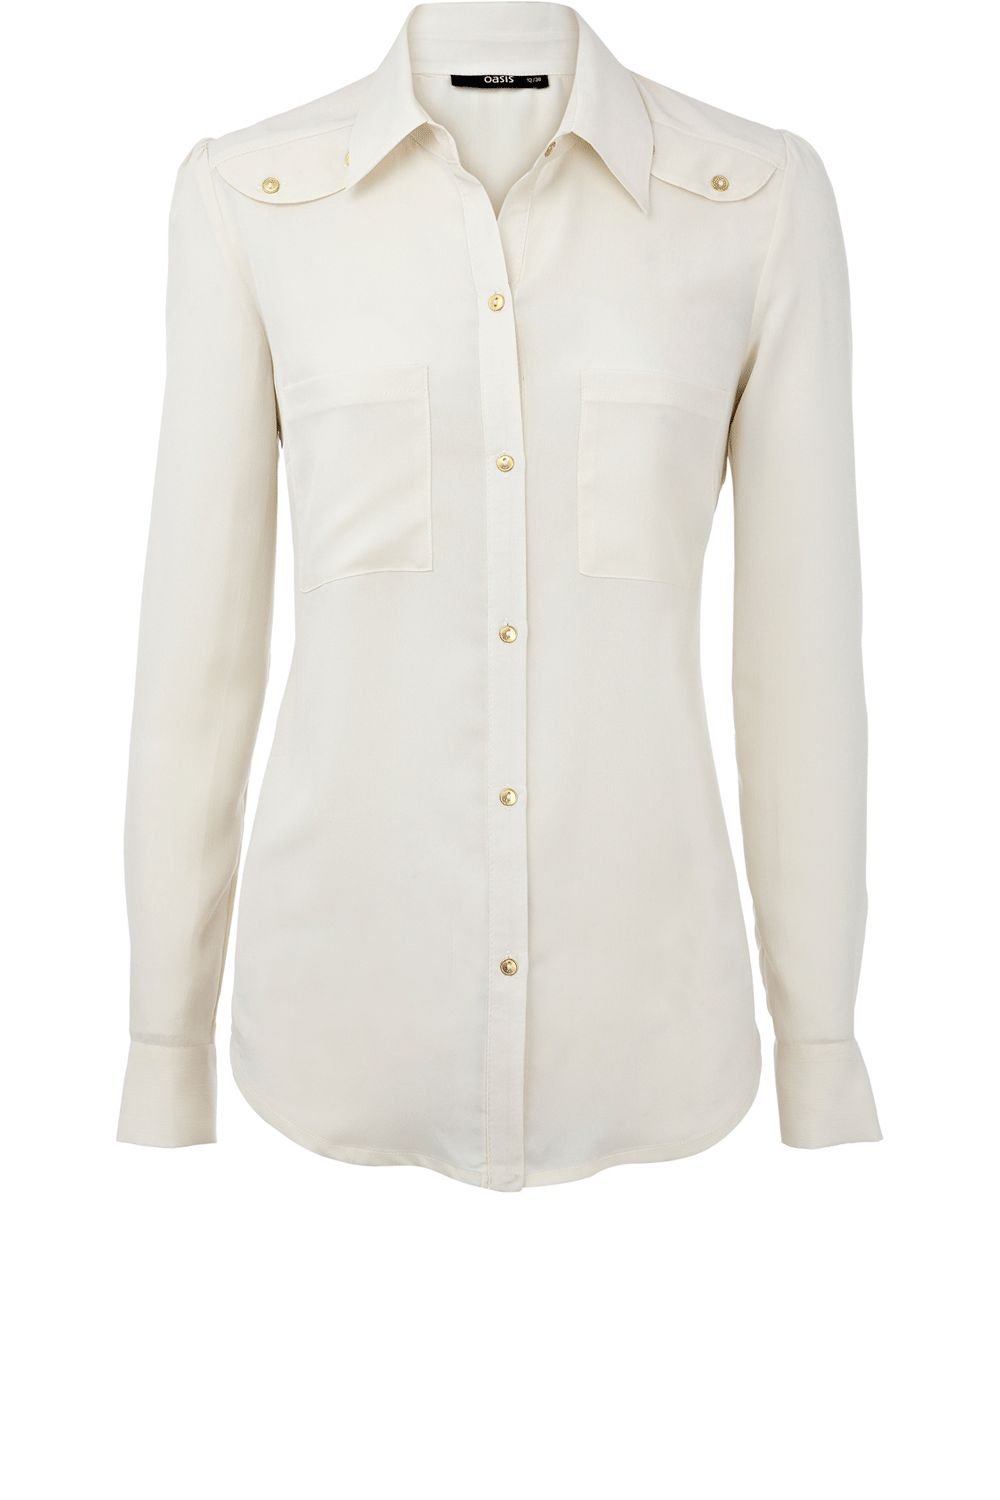 Oasis Safari chic blouse - Natural product image